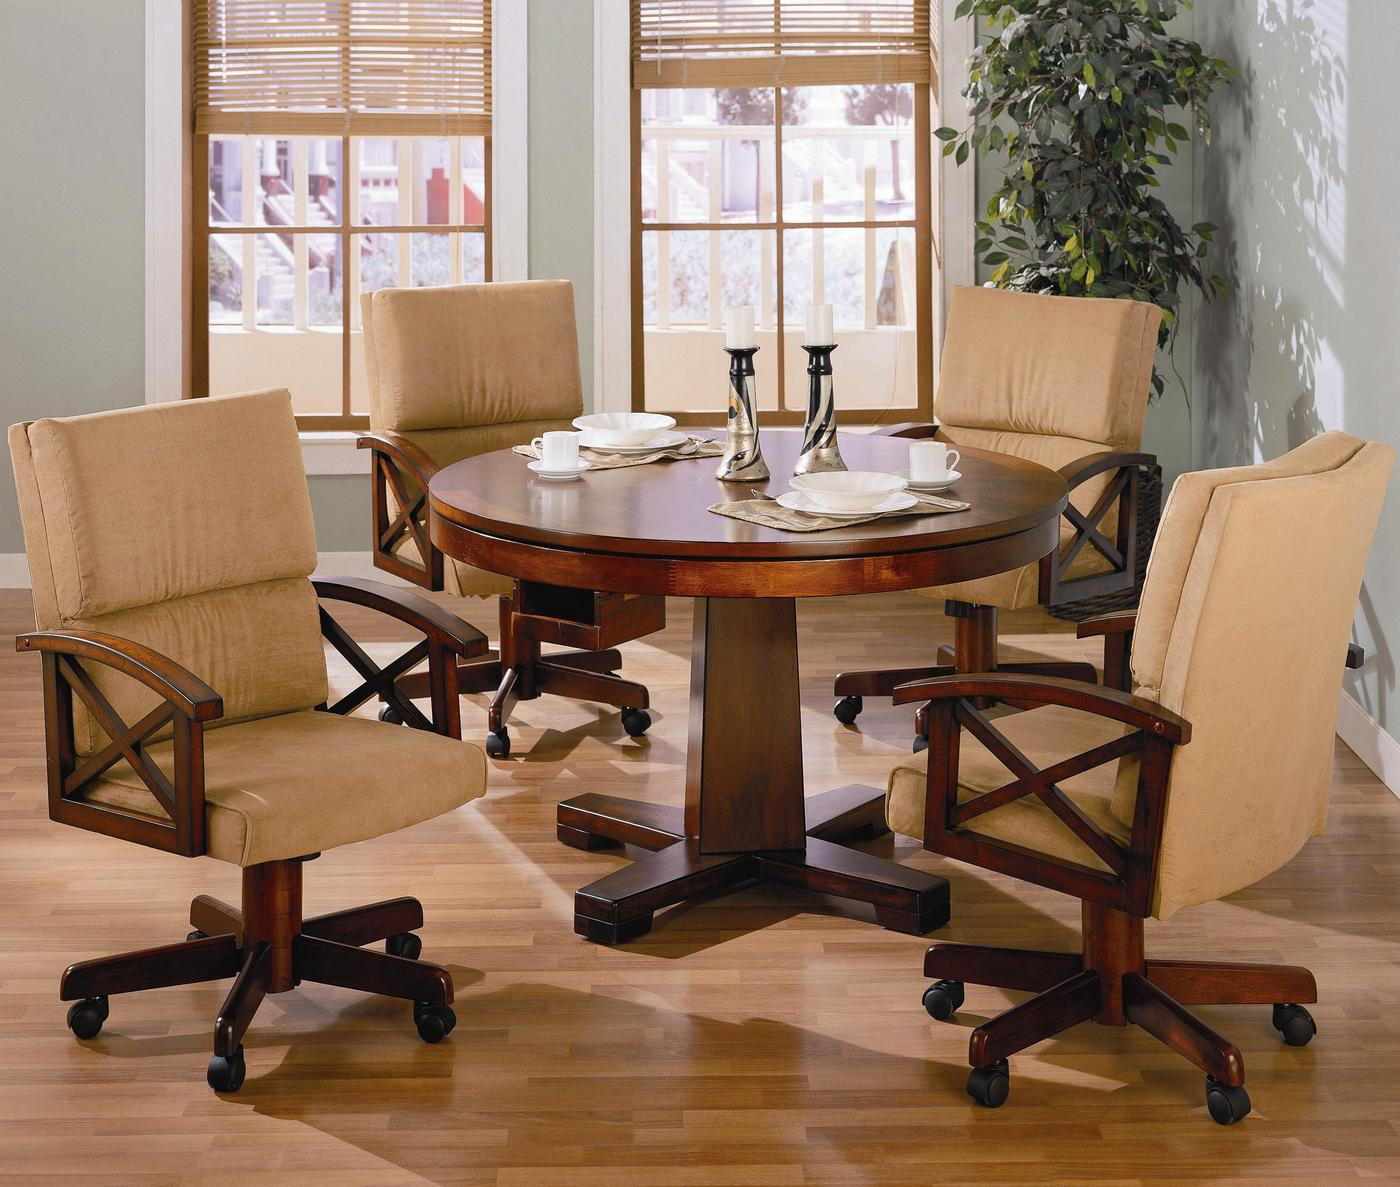 5 Piece Casual Oak 3 In 1 Recreational Game Table Set